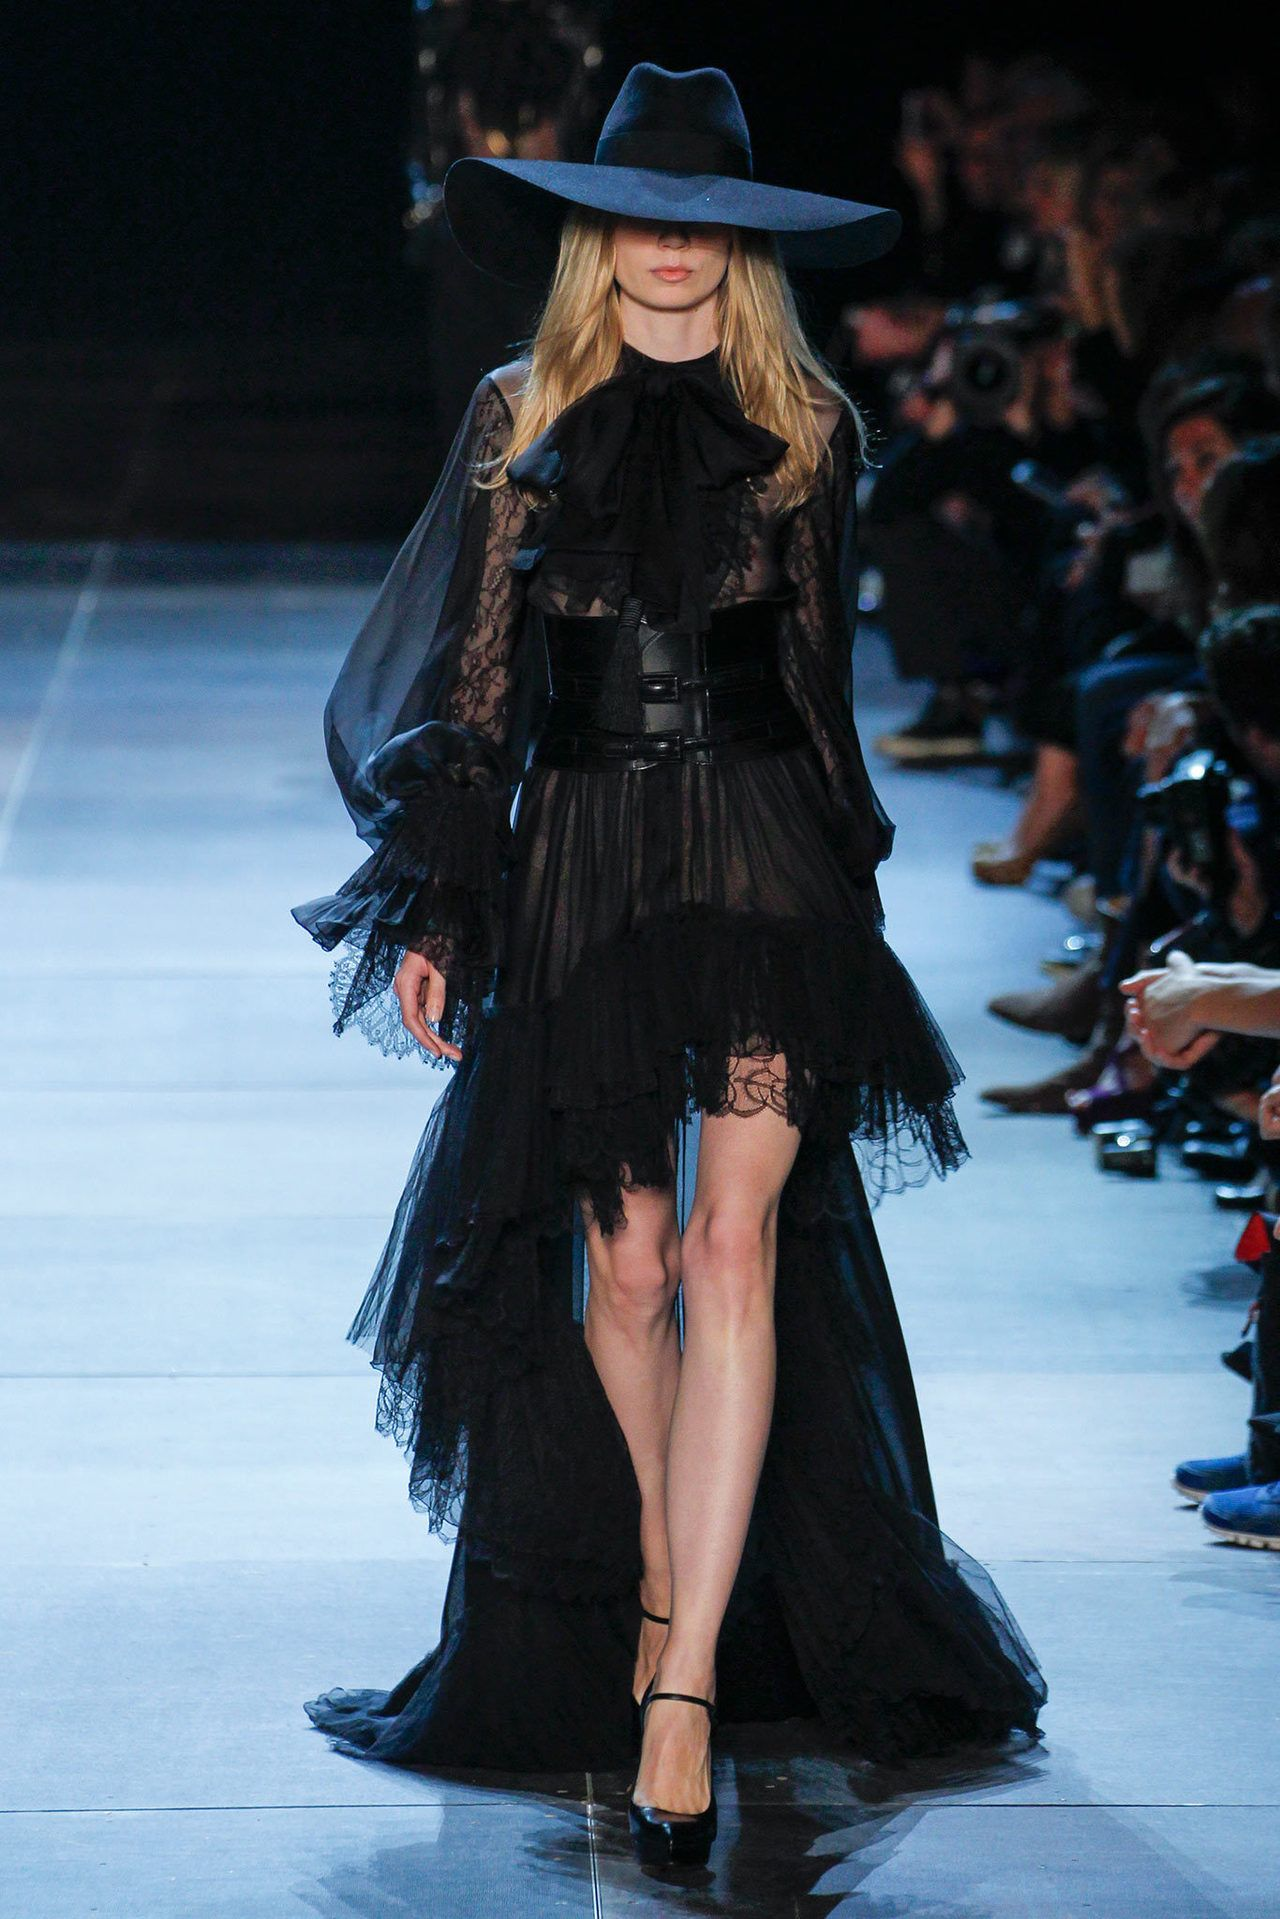 f7b49239 The Witching Hour of Saint Laurent Post-Dior, Hedi Slimane's first  collection at Saint Laurent was dark and edgy, evoking an air of debonair  sensuality.